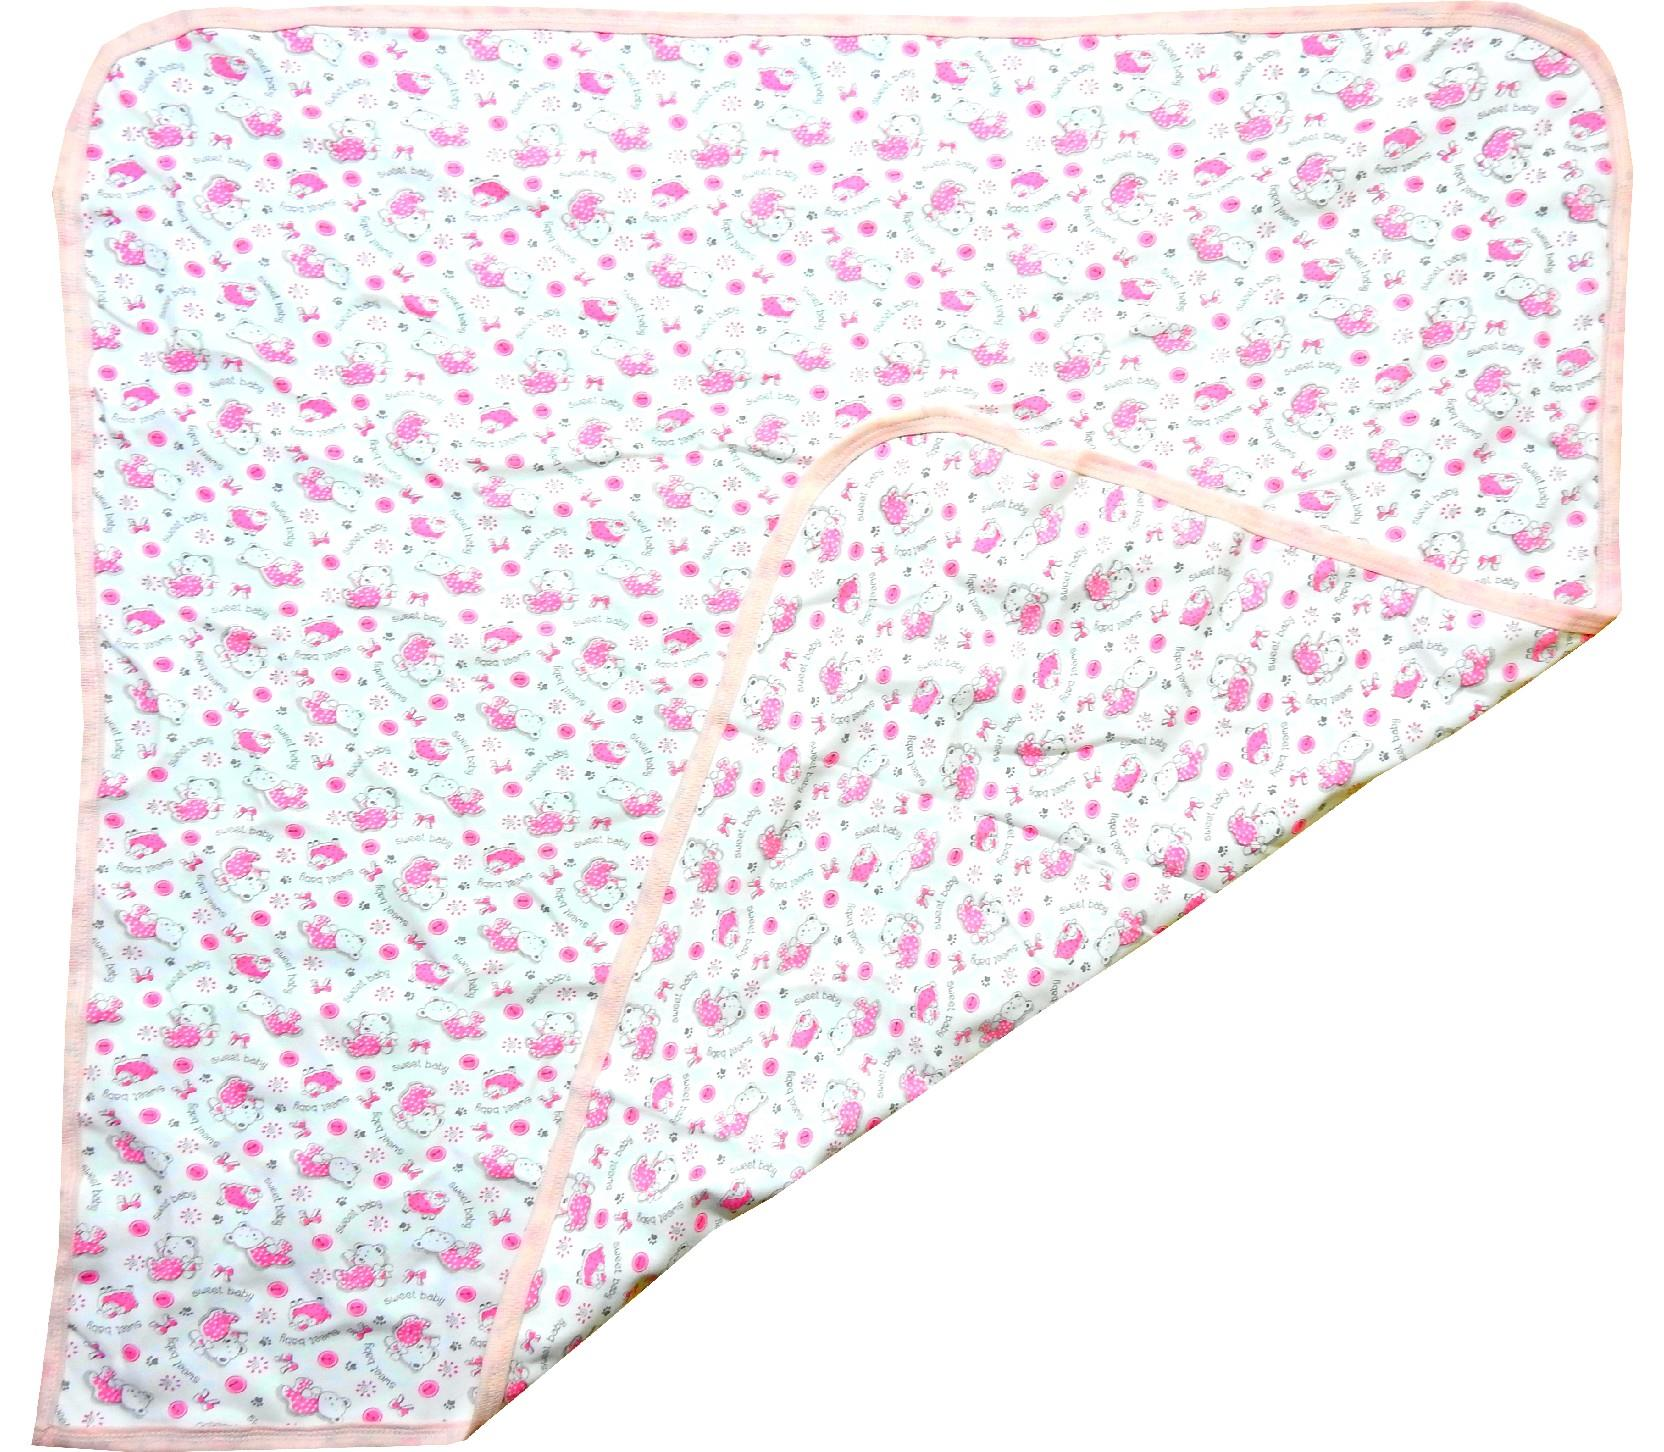 249 Wholesale embroidered blanket for babies